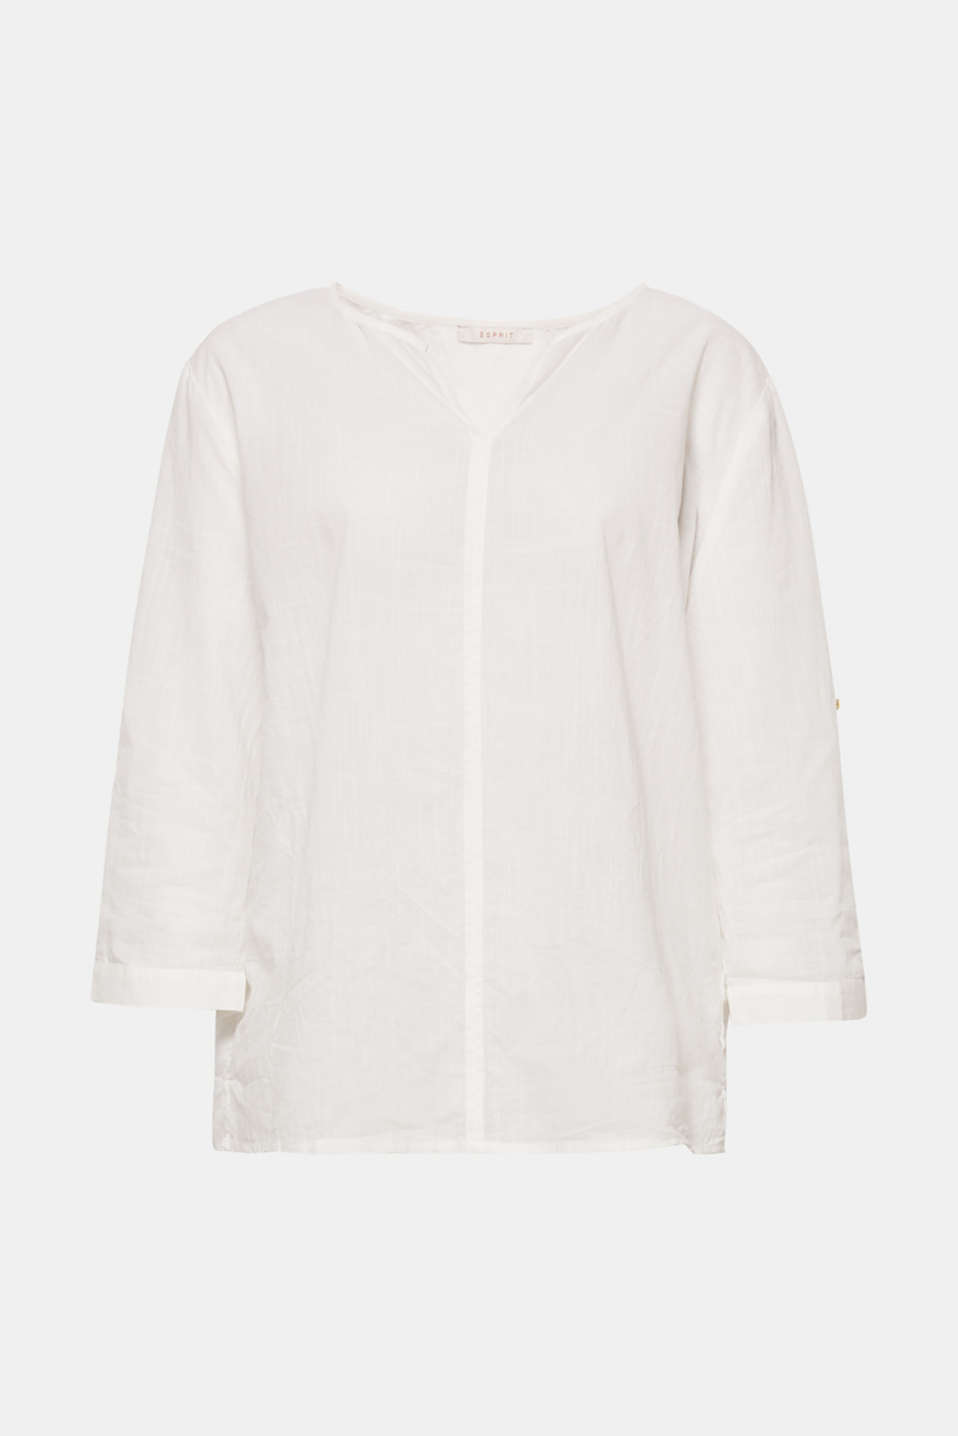 This airy cotton blouse with a tulip neckline and three-quarter length turn-up sleeves is clean and modern!